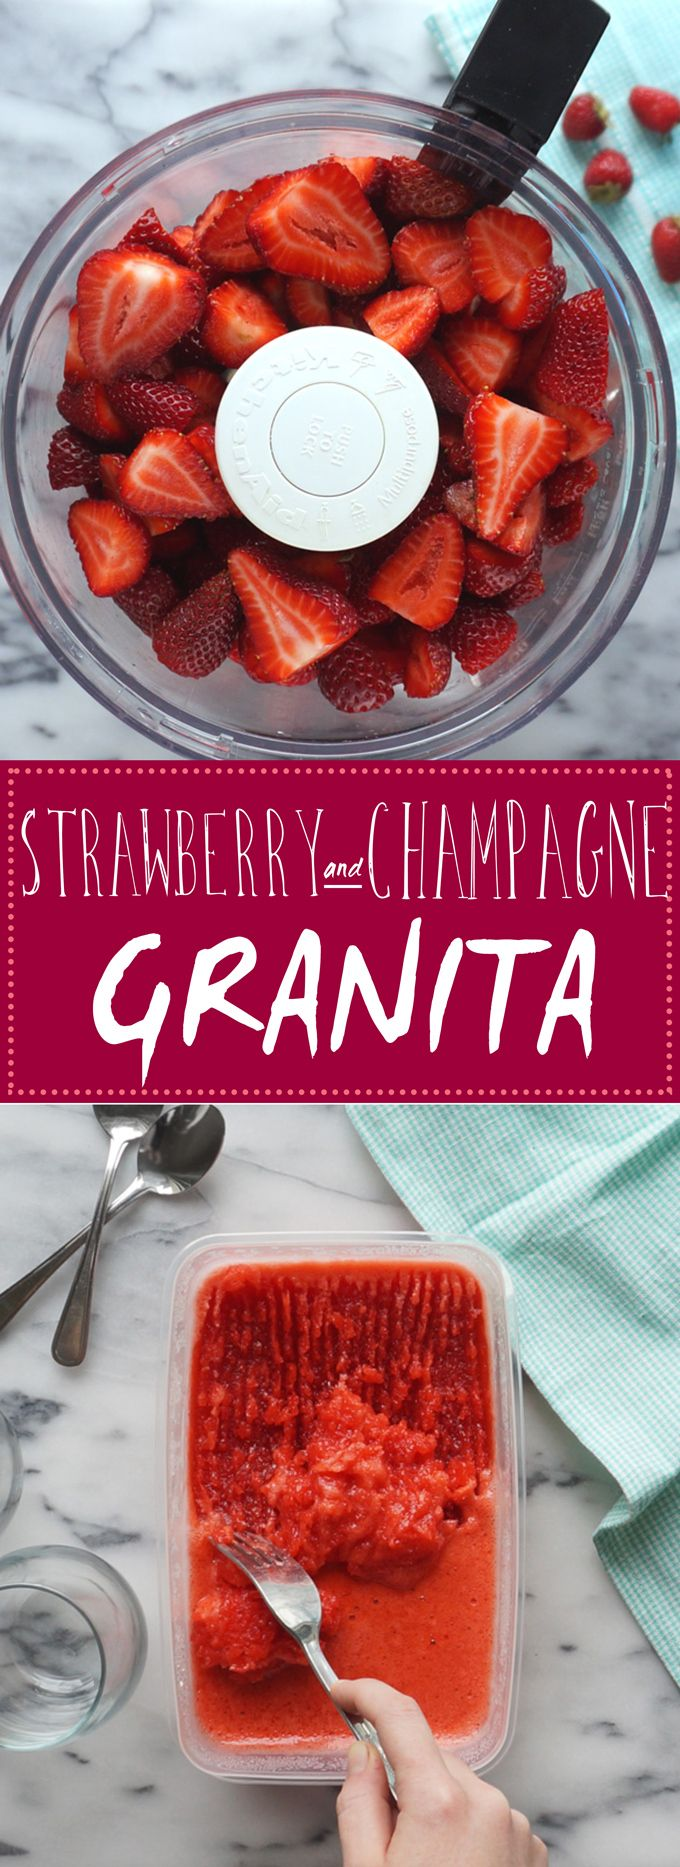 Strawberry & Champagne Granita - use #ConoSur Brut Sparkling wine for this luscious summer treat!